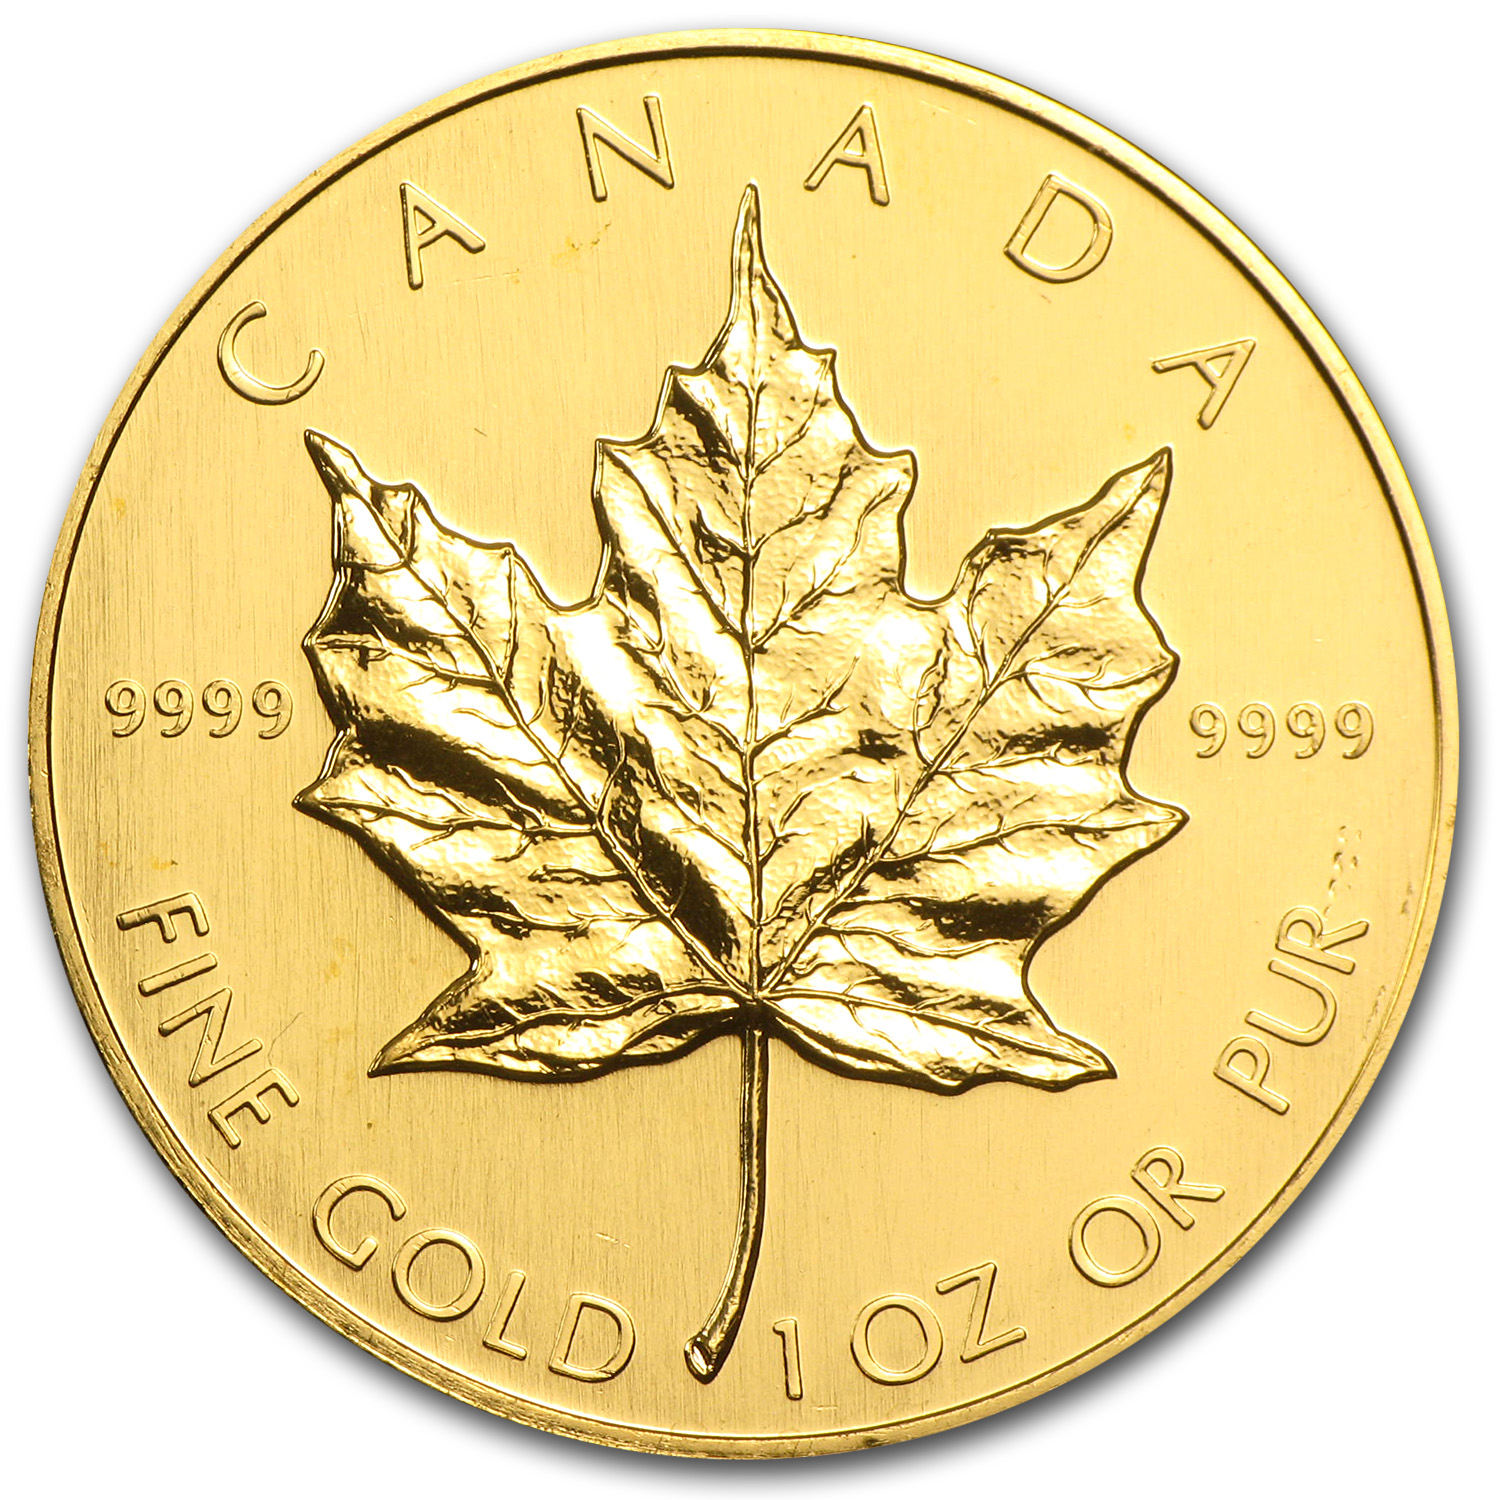 1989 1 oz Gold Canadian Maple Leaf BU